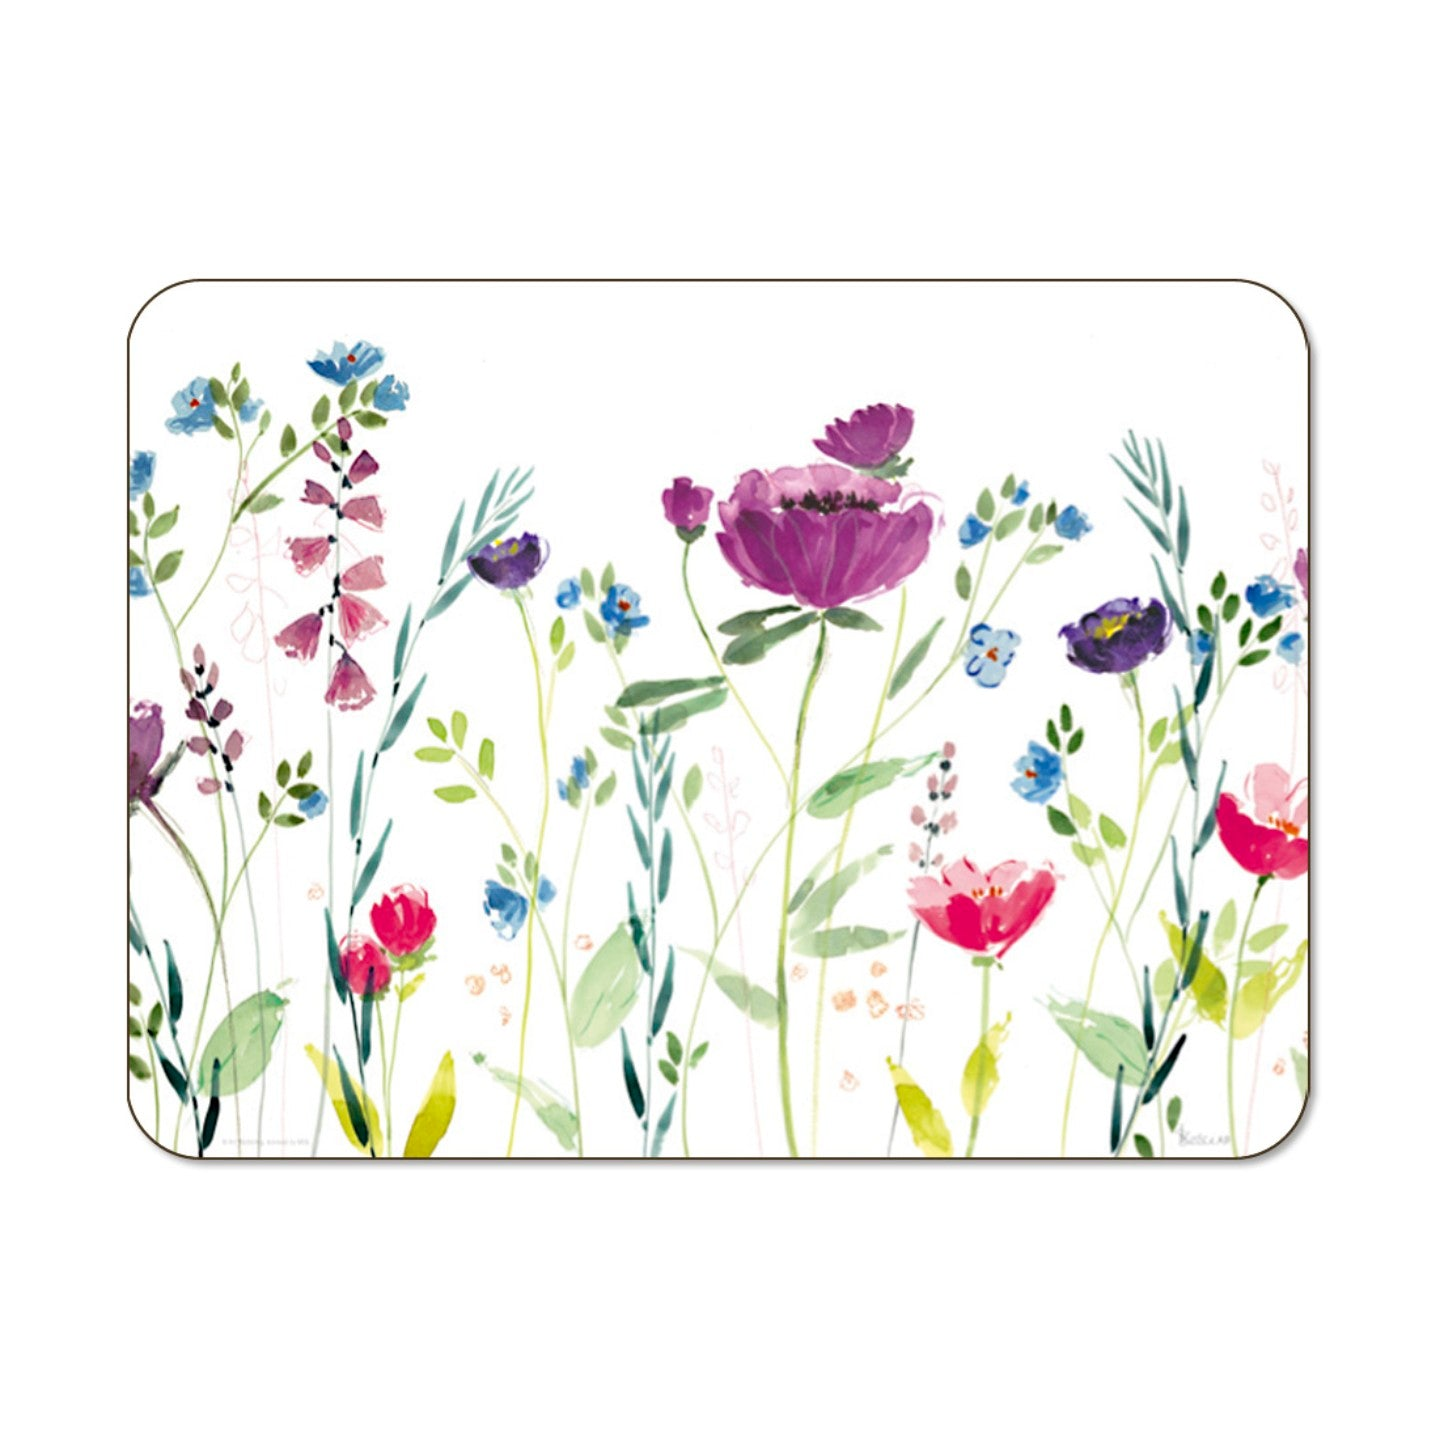 Spring Flowers Small 29cm x 21.5cm Set of 6 Placemats